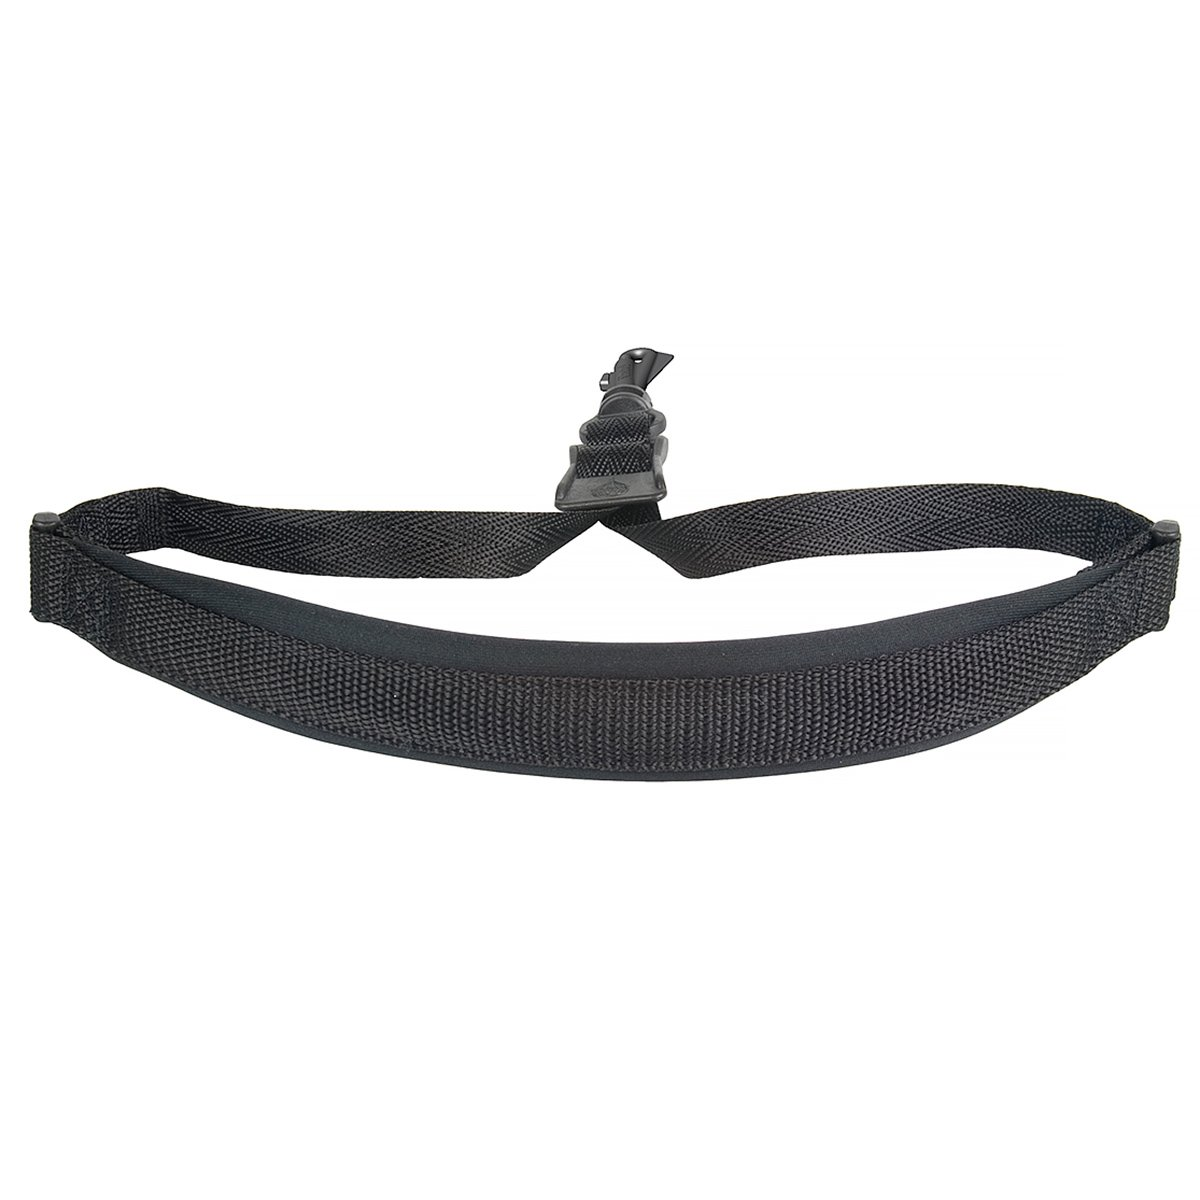 Neotech 8401152 Wick-It Sax Strap, Junior, Swivel Hook - Non-stretch Padded Neck Strap